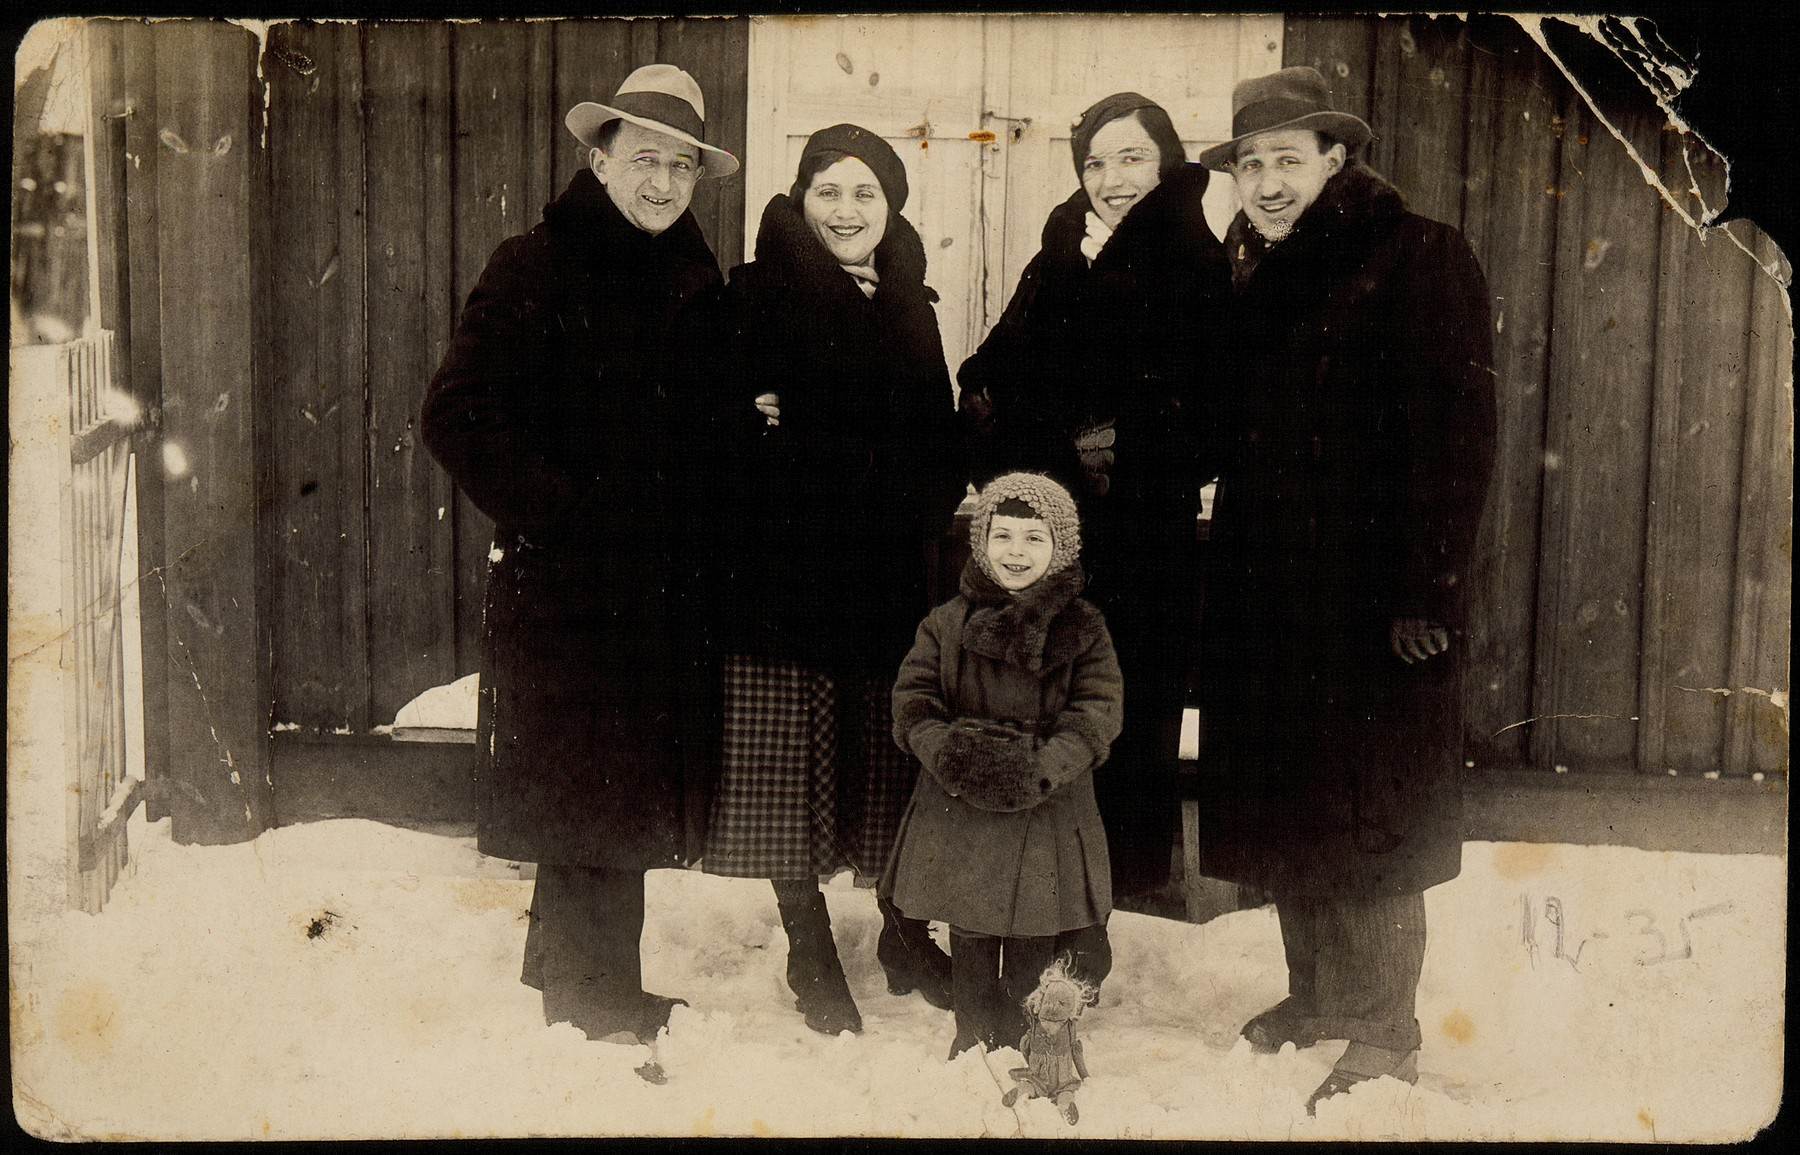 Members of the Sonenson family stand in the snow by a wooden wall.   Standing on the left: Shalom Sonenson Ben-Shemesh and his wife Miriam.  On the right: Miriam's relatives the Bergmans.  The little girl is Gittele Sonenson, the oldest daughter of Shalom and Miriam.  The Bergmans immigrated to Cuba.  Miriam Sonenson was murdered in the Radun ghetto.  Gittele died of TB while hiding in a cave on the Korkus farm a few days before liberation.  Shalom Sonenson (Ben-Shemesh) survived the Holocaust hiding in various locations.